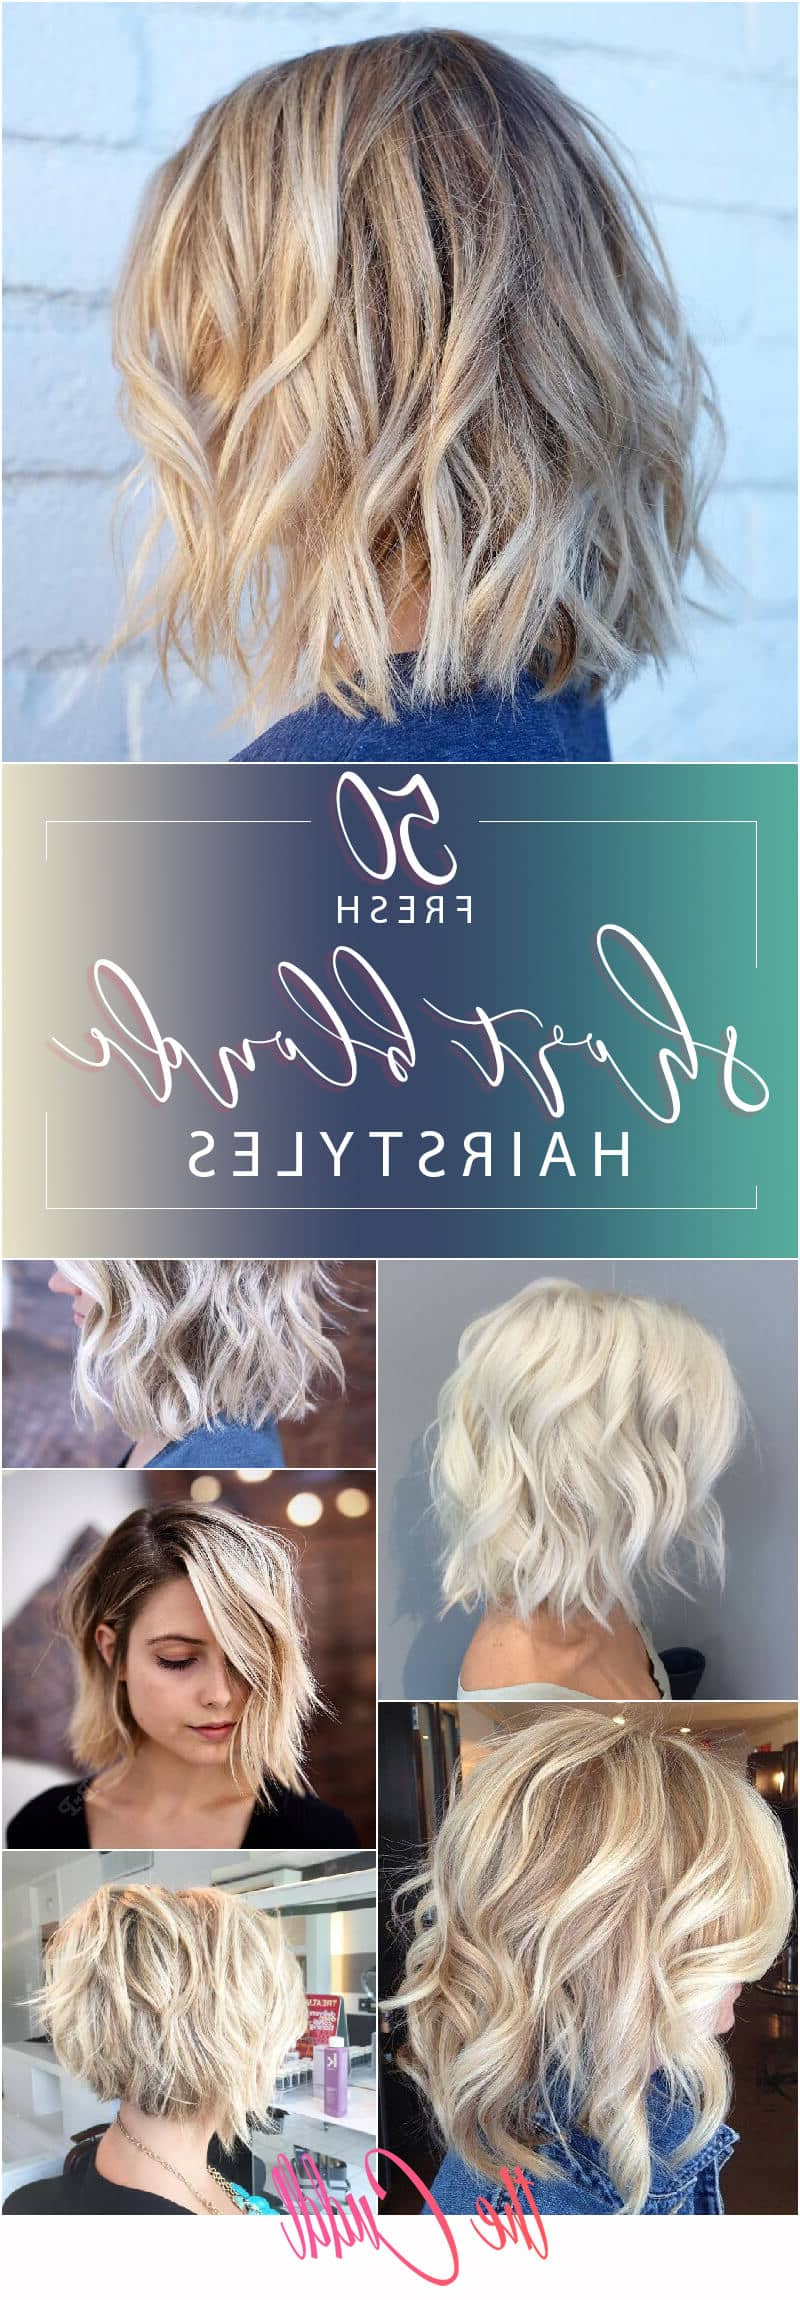 50 Fresh Short Blonde Hair Ideas To Update Your Style In 2019 Pertaining To Well Known Straight Tousled Blonde Balayage Bob Hairstyles (View 17 of 20)